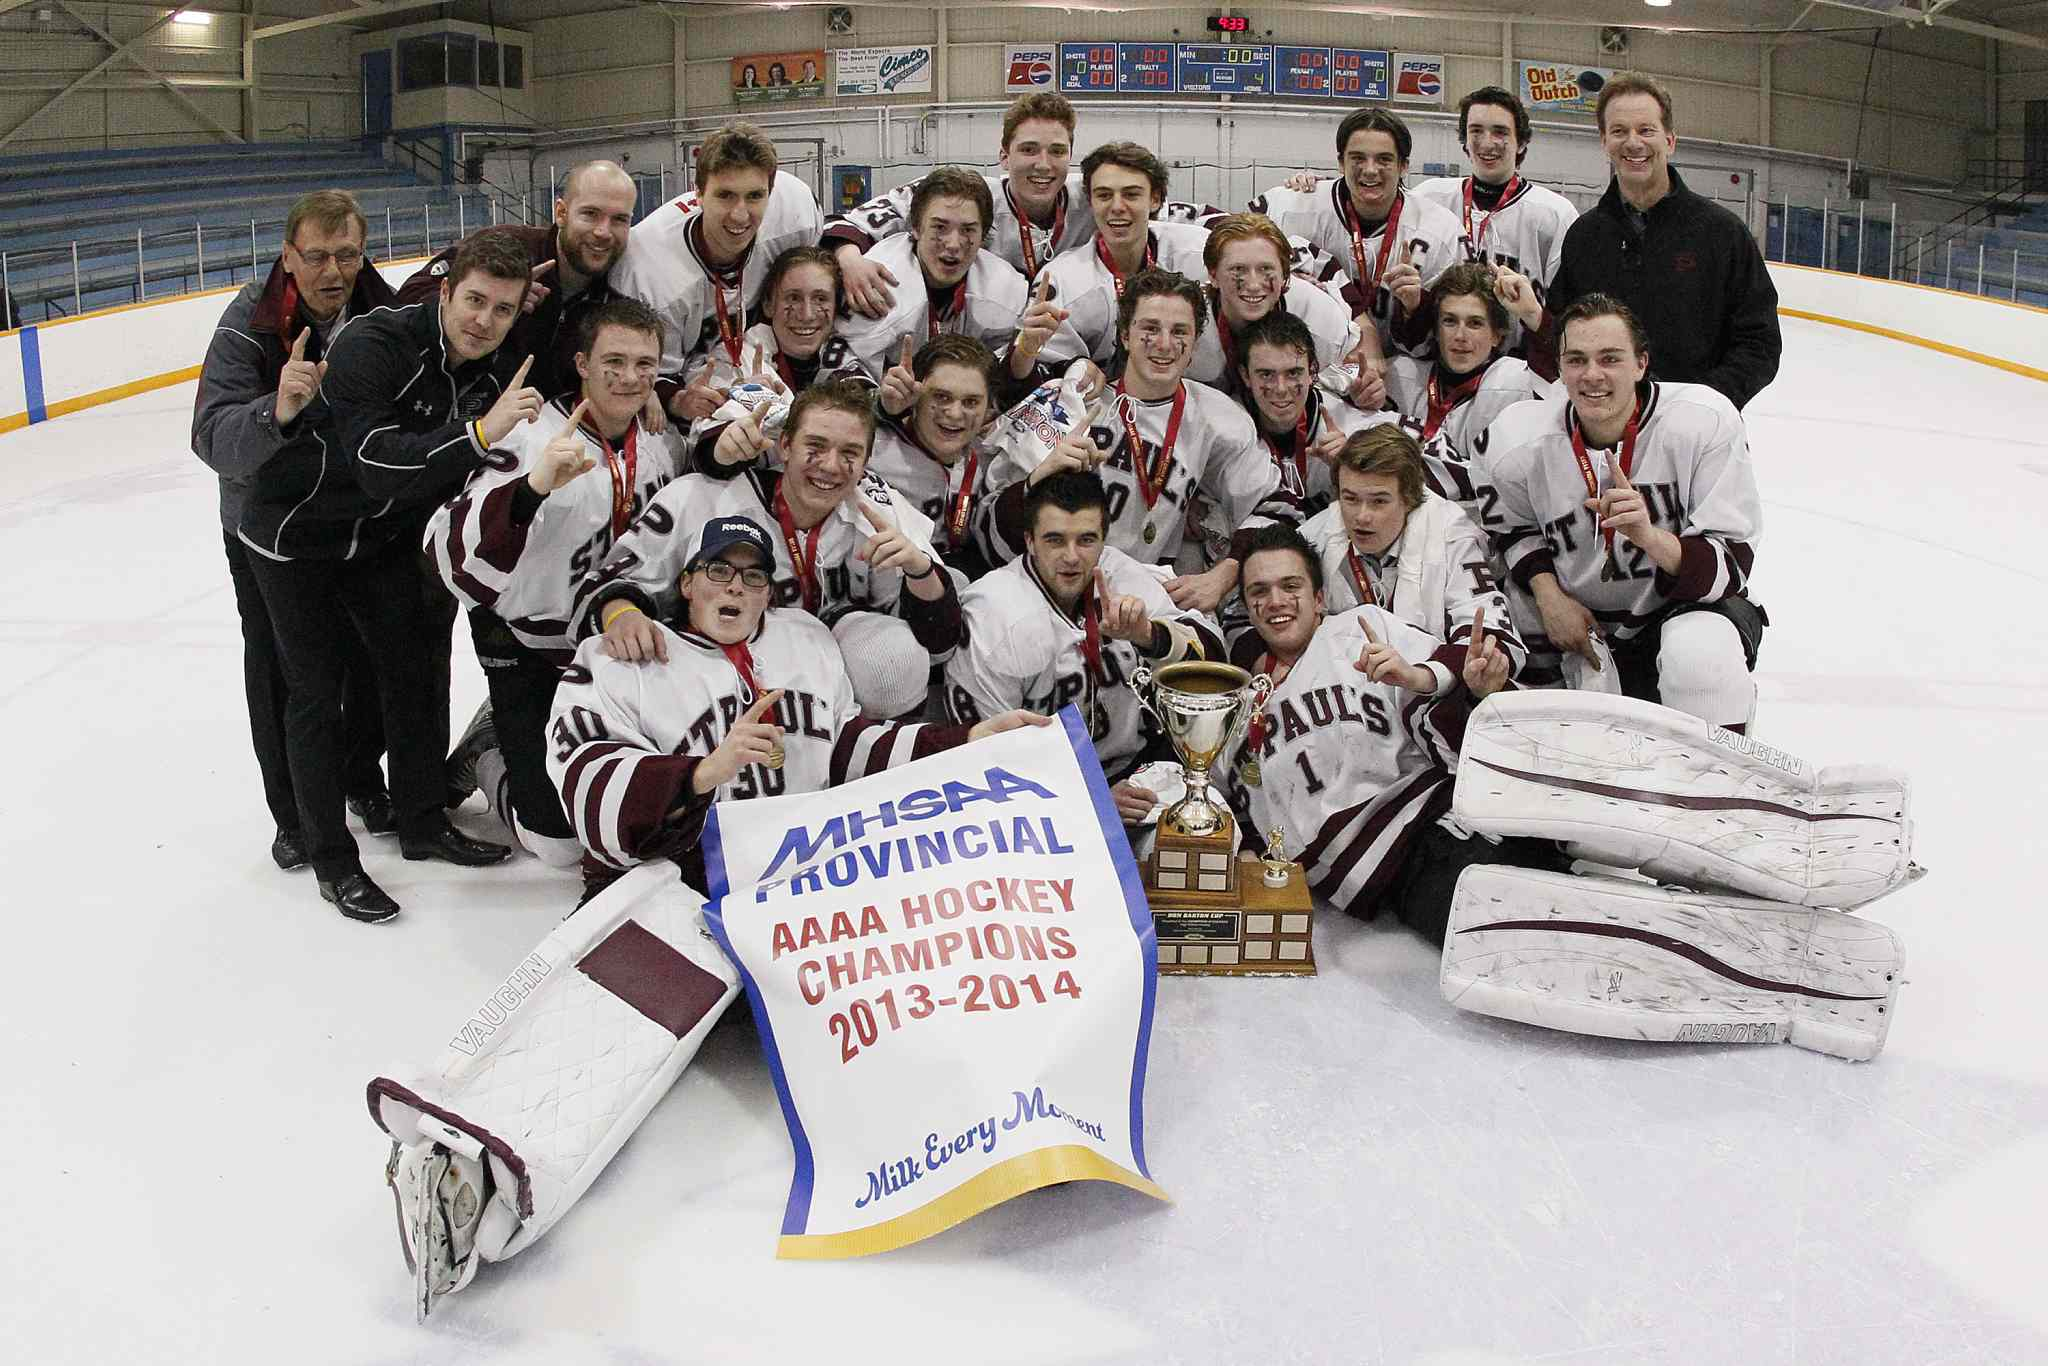 The provincial champion St. Paul's Crusaders hockey team pose for a trophy shot.